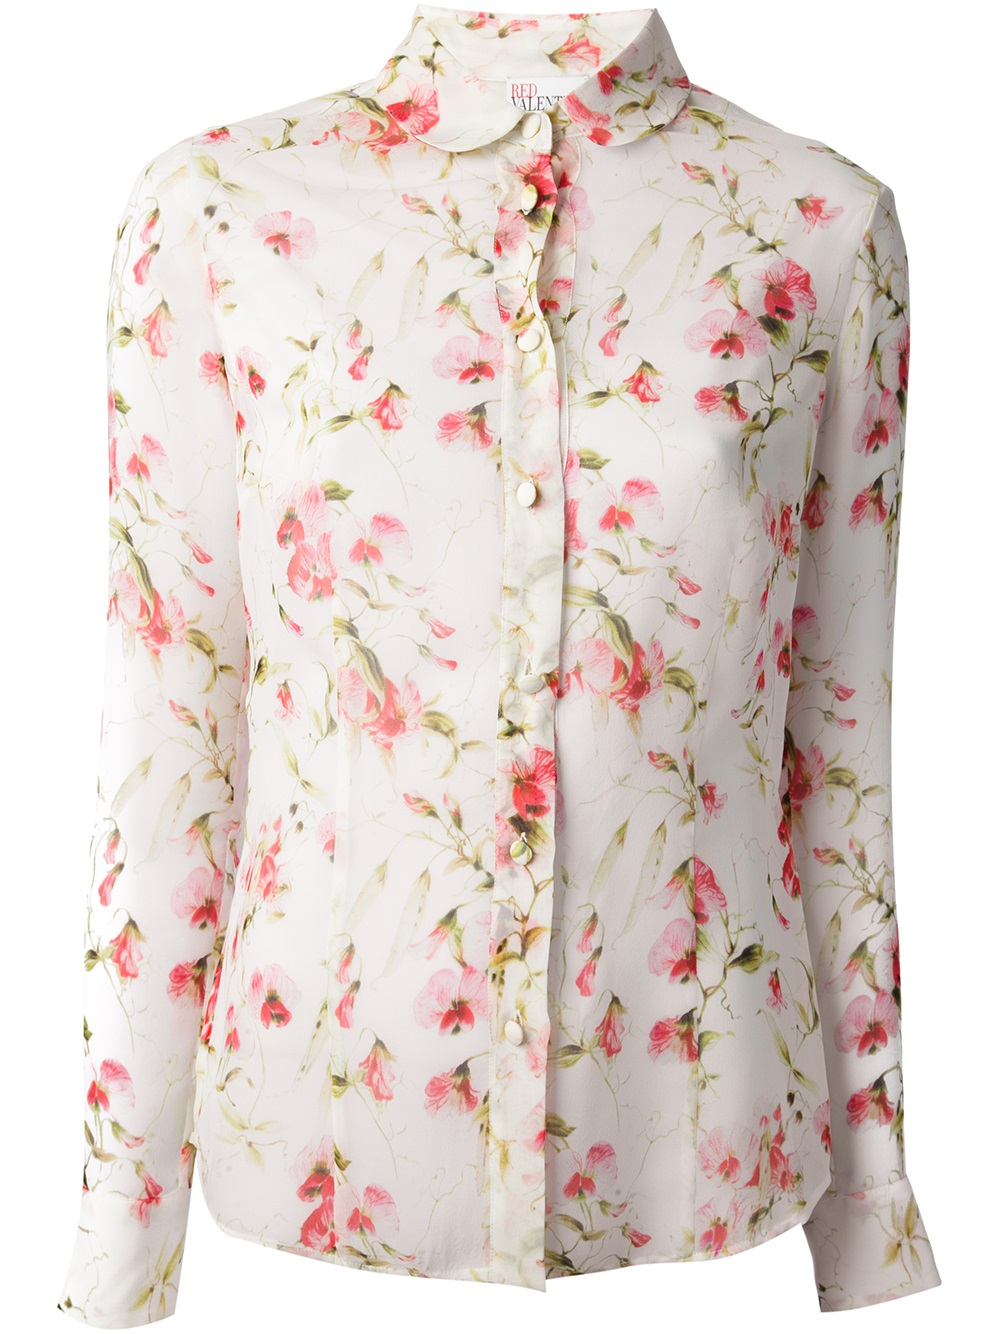 Lyst red valentino floral print shirt in white gallery mightylinksfo